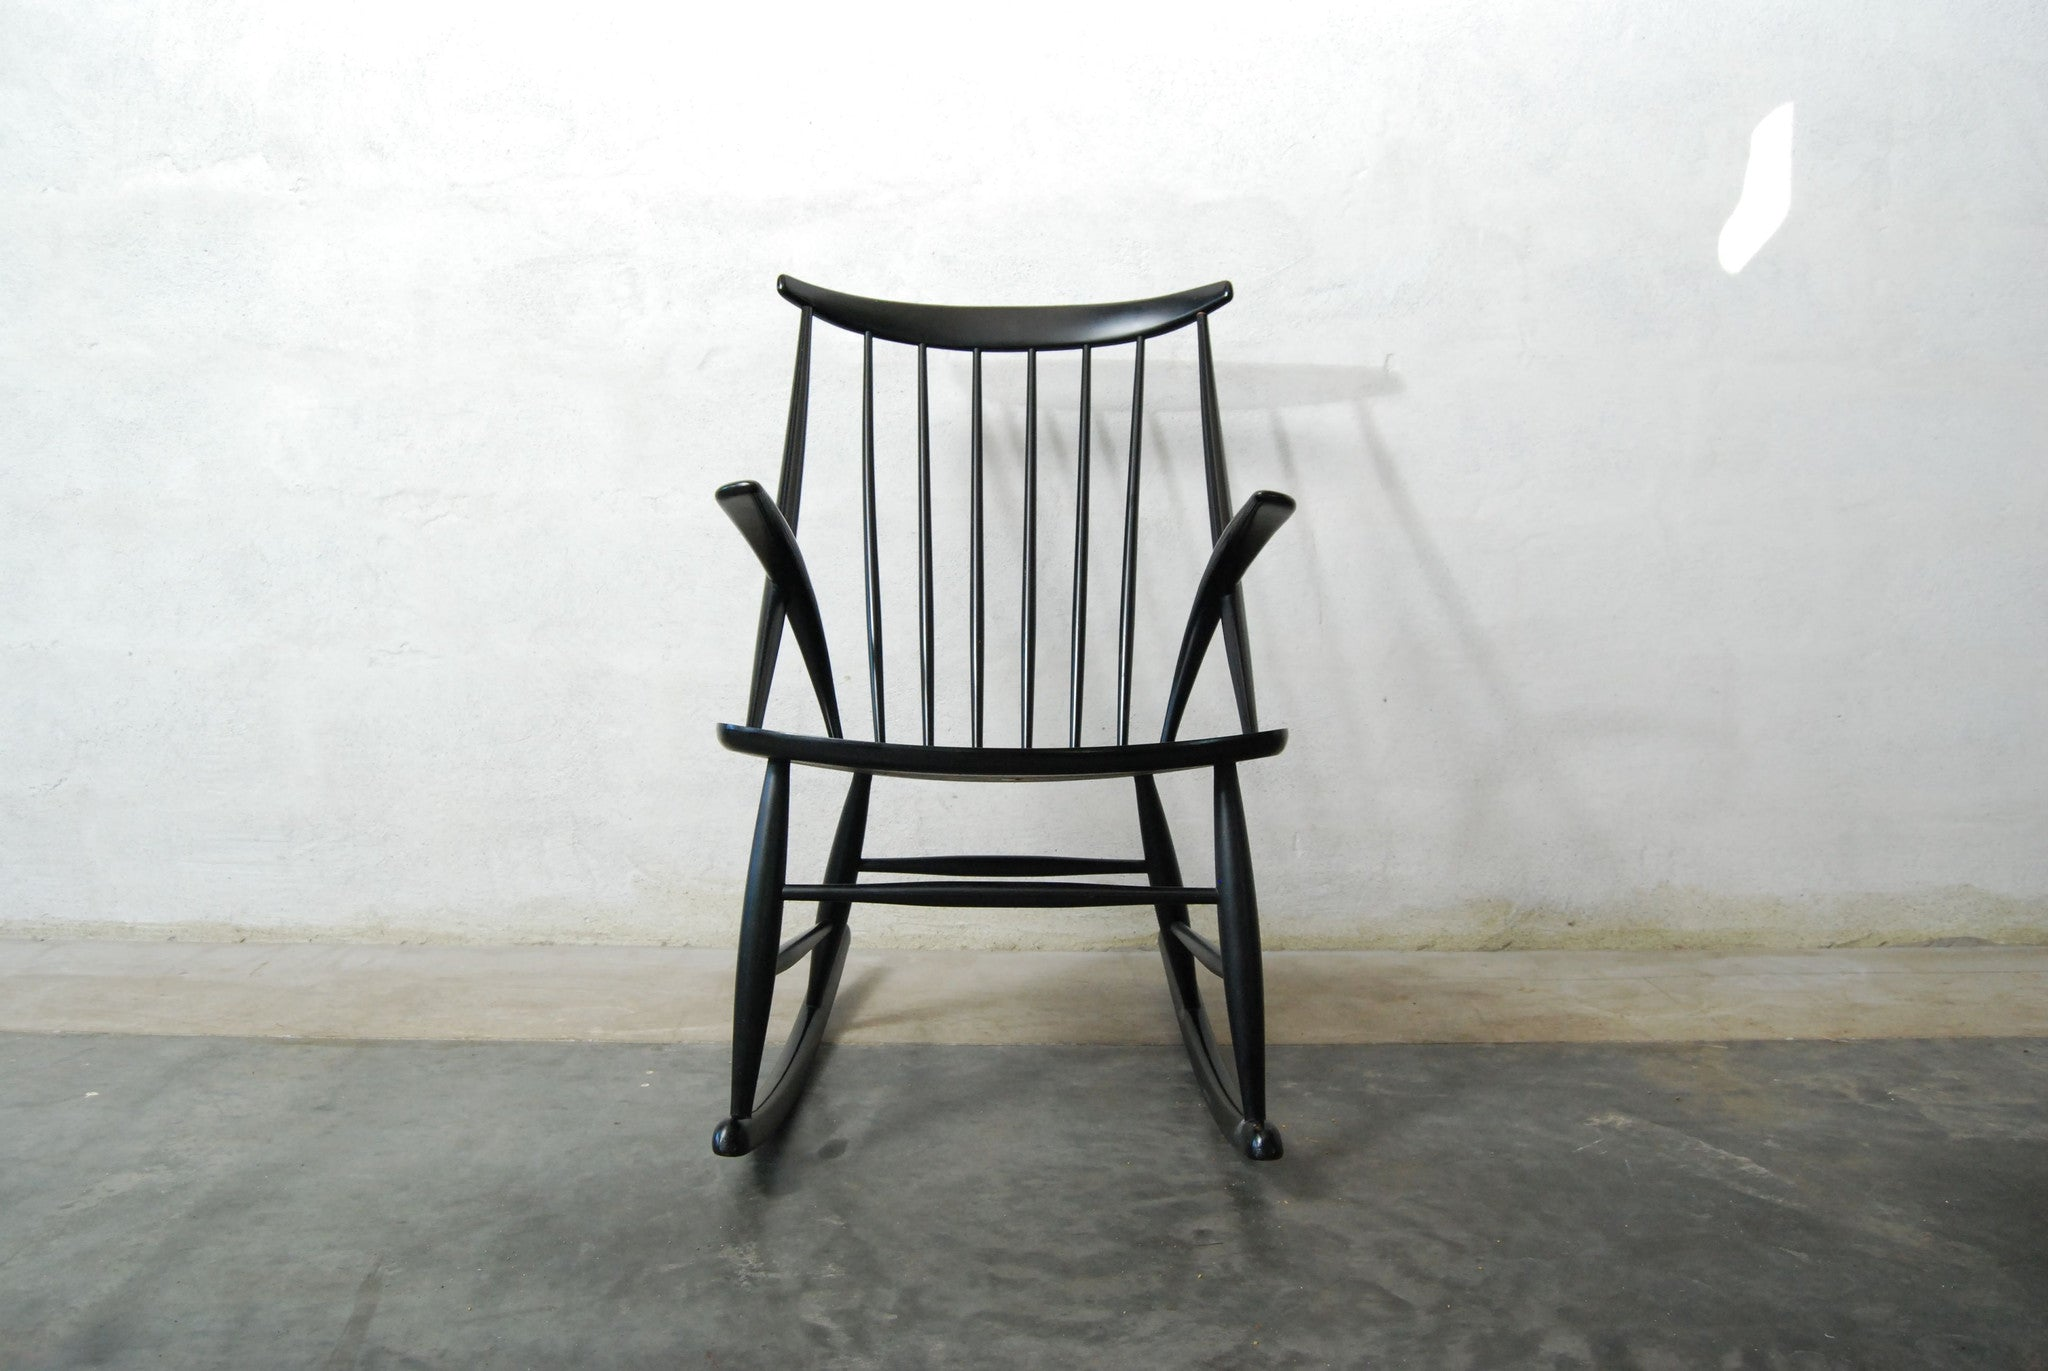 Chase & Sorensen Rocking chair by Illum Wikkels no. 2